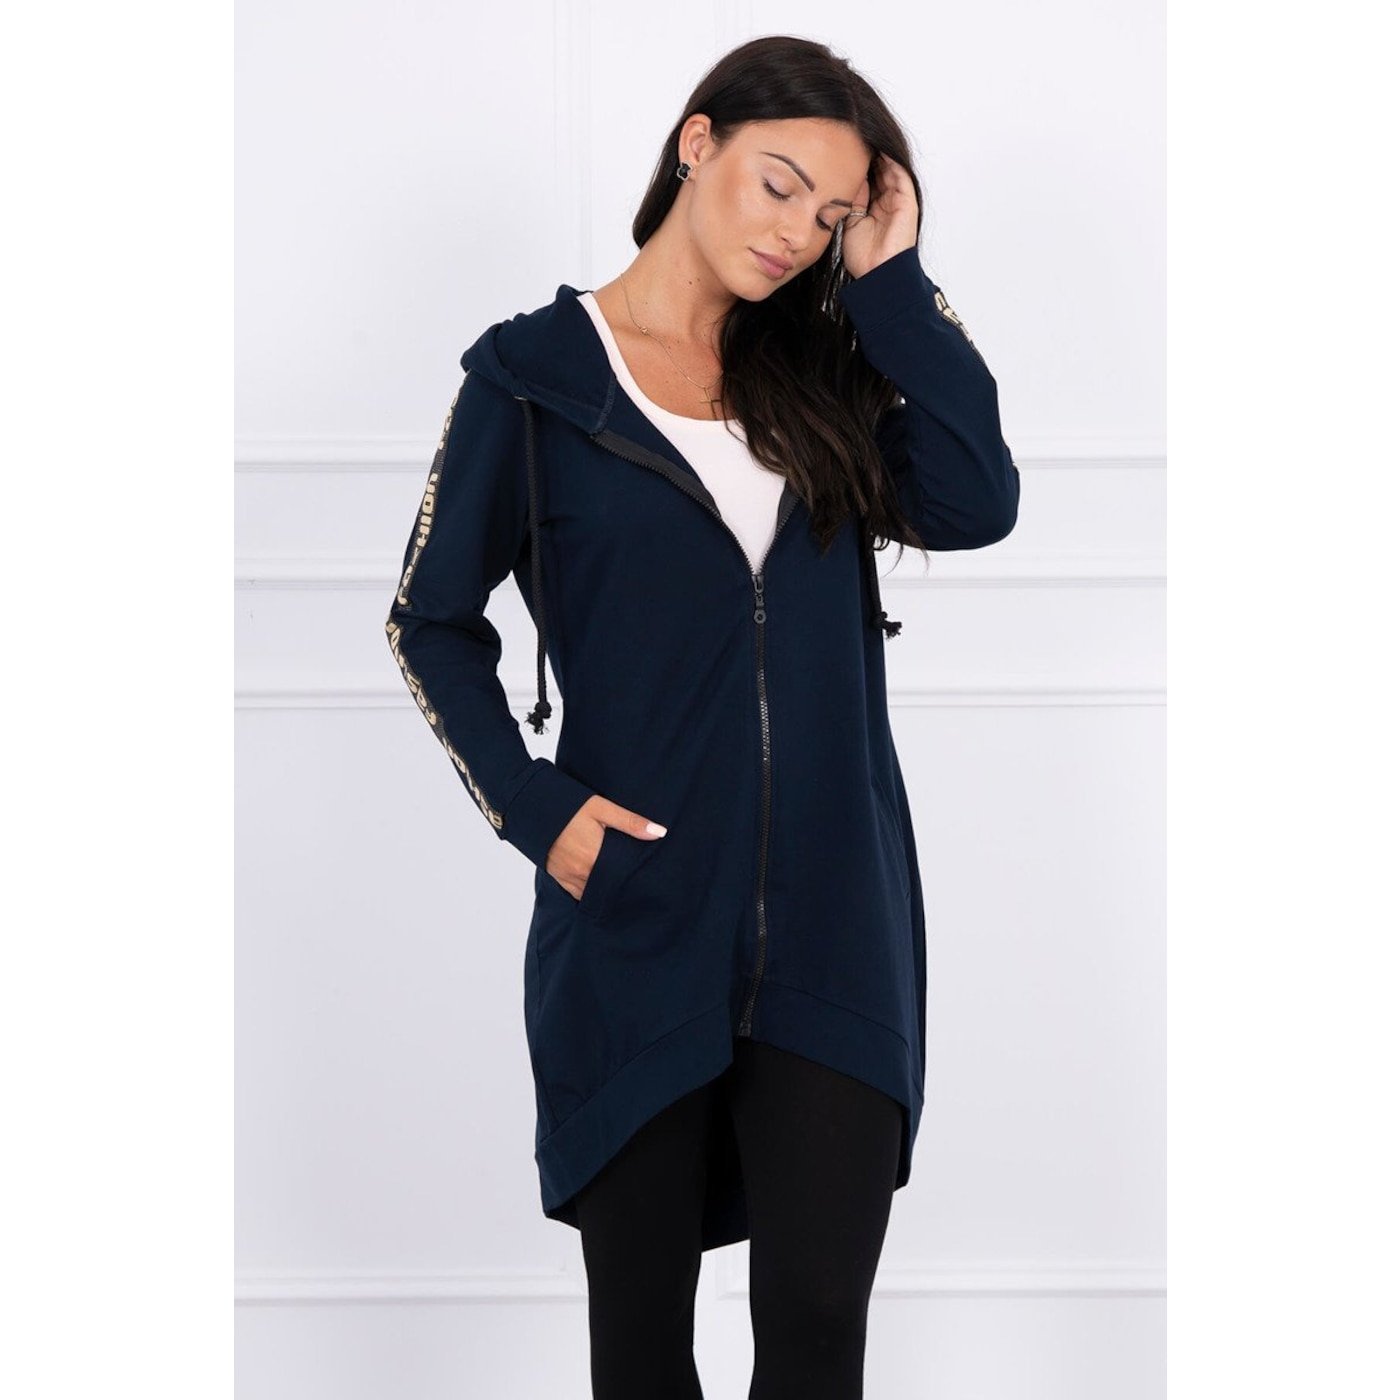 Sweatshirt with zip at the back navy blue